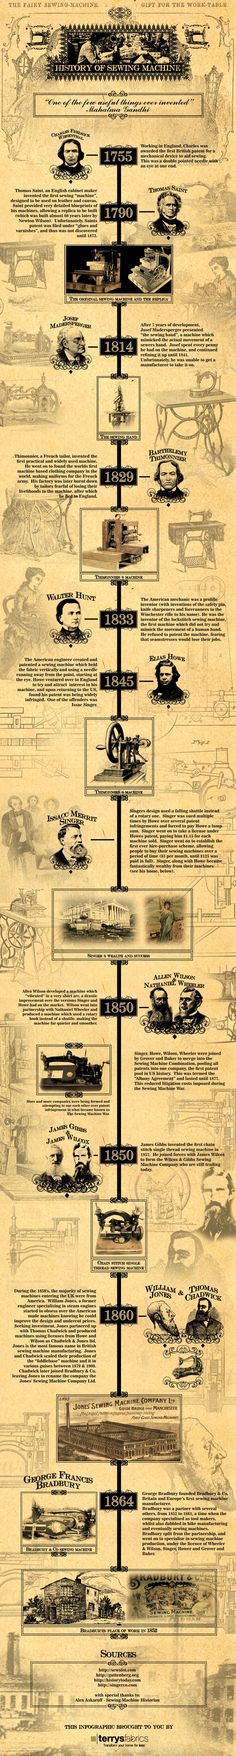 The History of the Sewing Machine